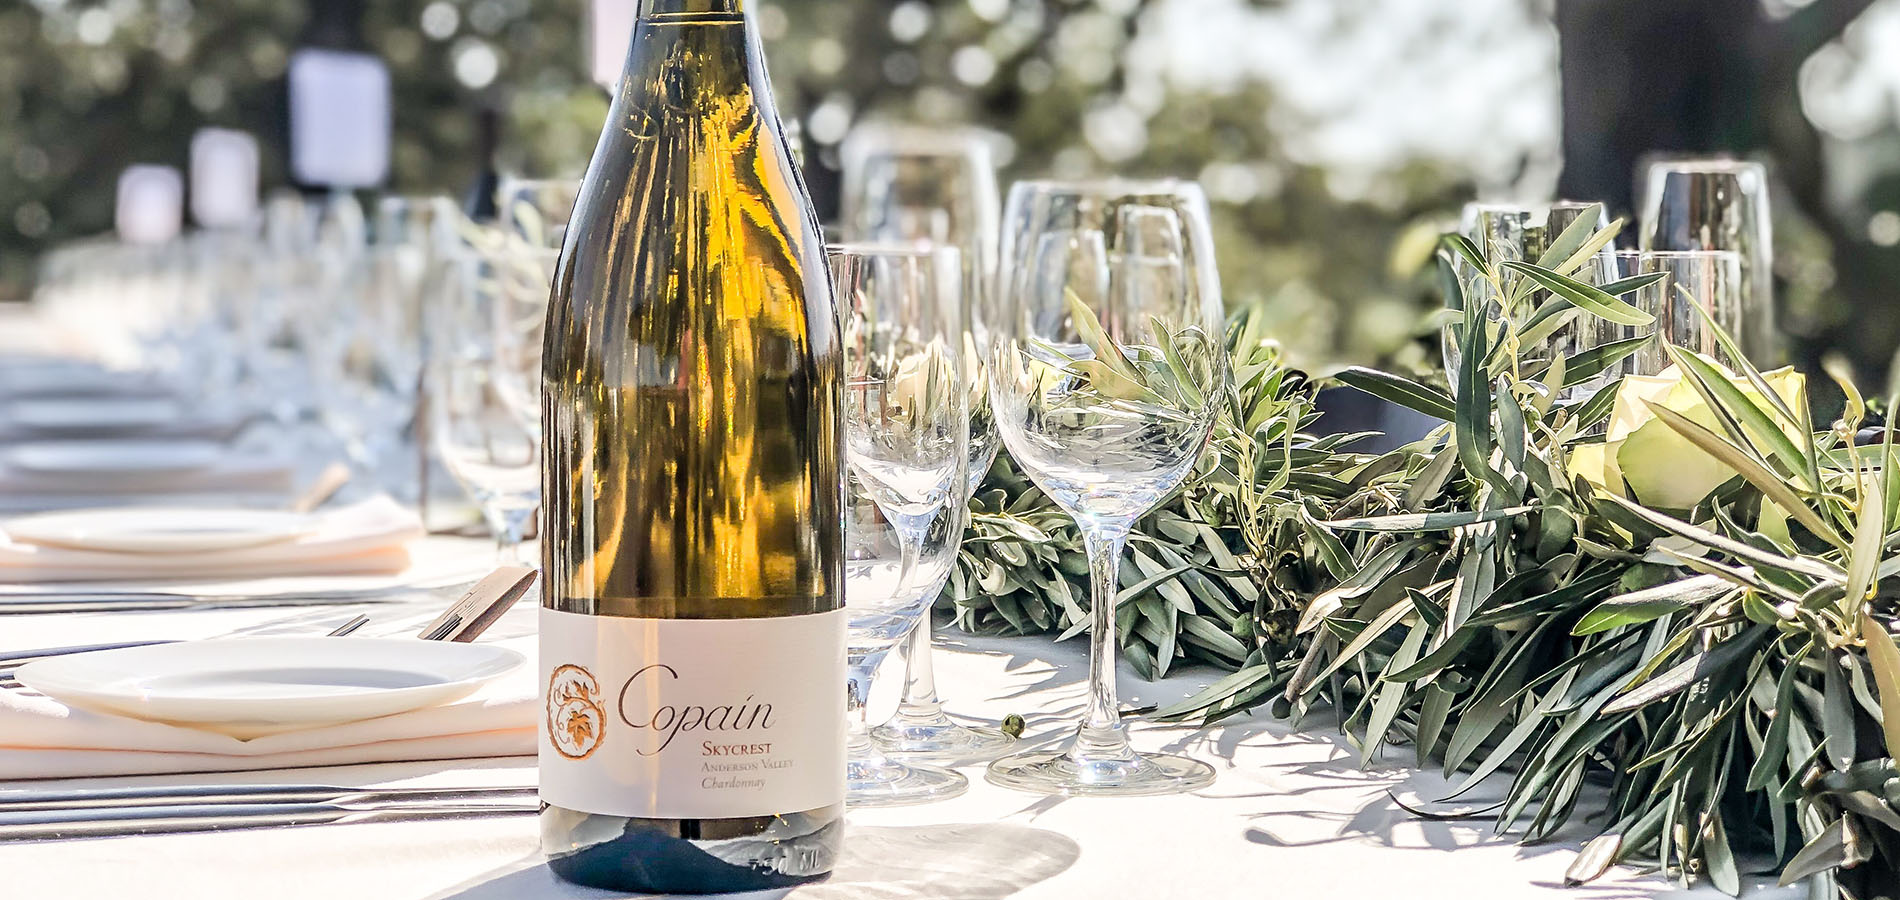 Copain Winery Private Events and Weddings